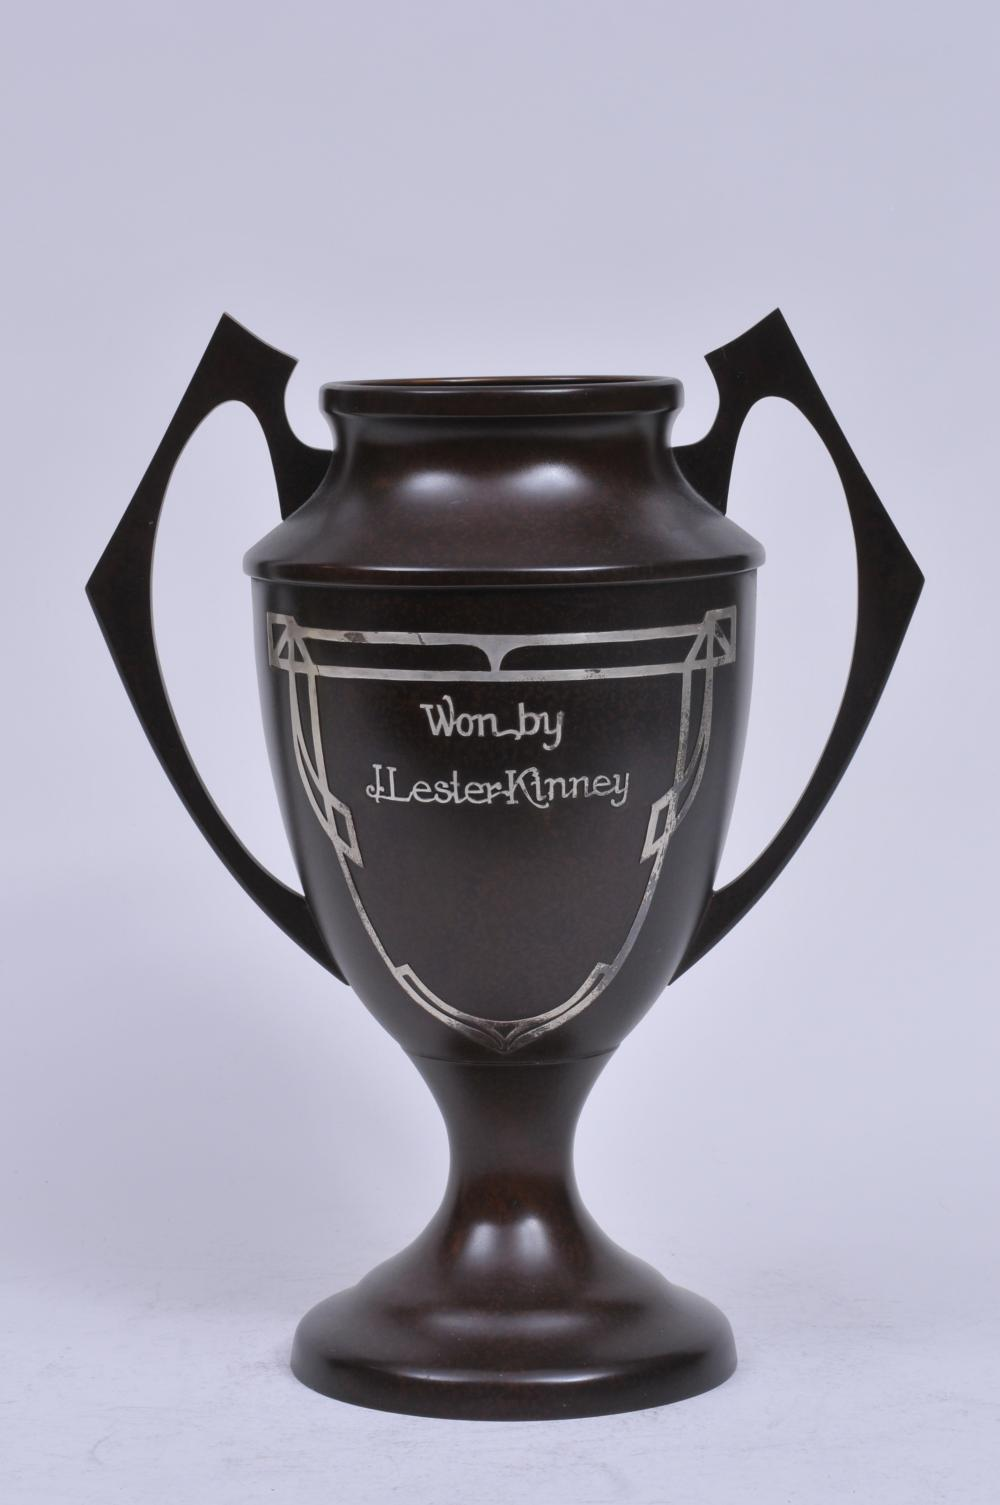 """Lot 289: """"Heinze Art Metal"""" Silver on bronze Arts and Crafts two handled trophy. Good dark patina. """"1927 Goold Bros. Tournament. July 2-3-4th . 1927. Second Flight. Won by J. Lester Kinney"""". Good condition. 14"""" high."""